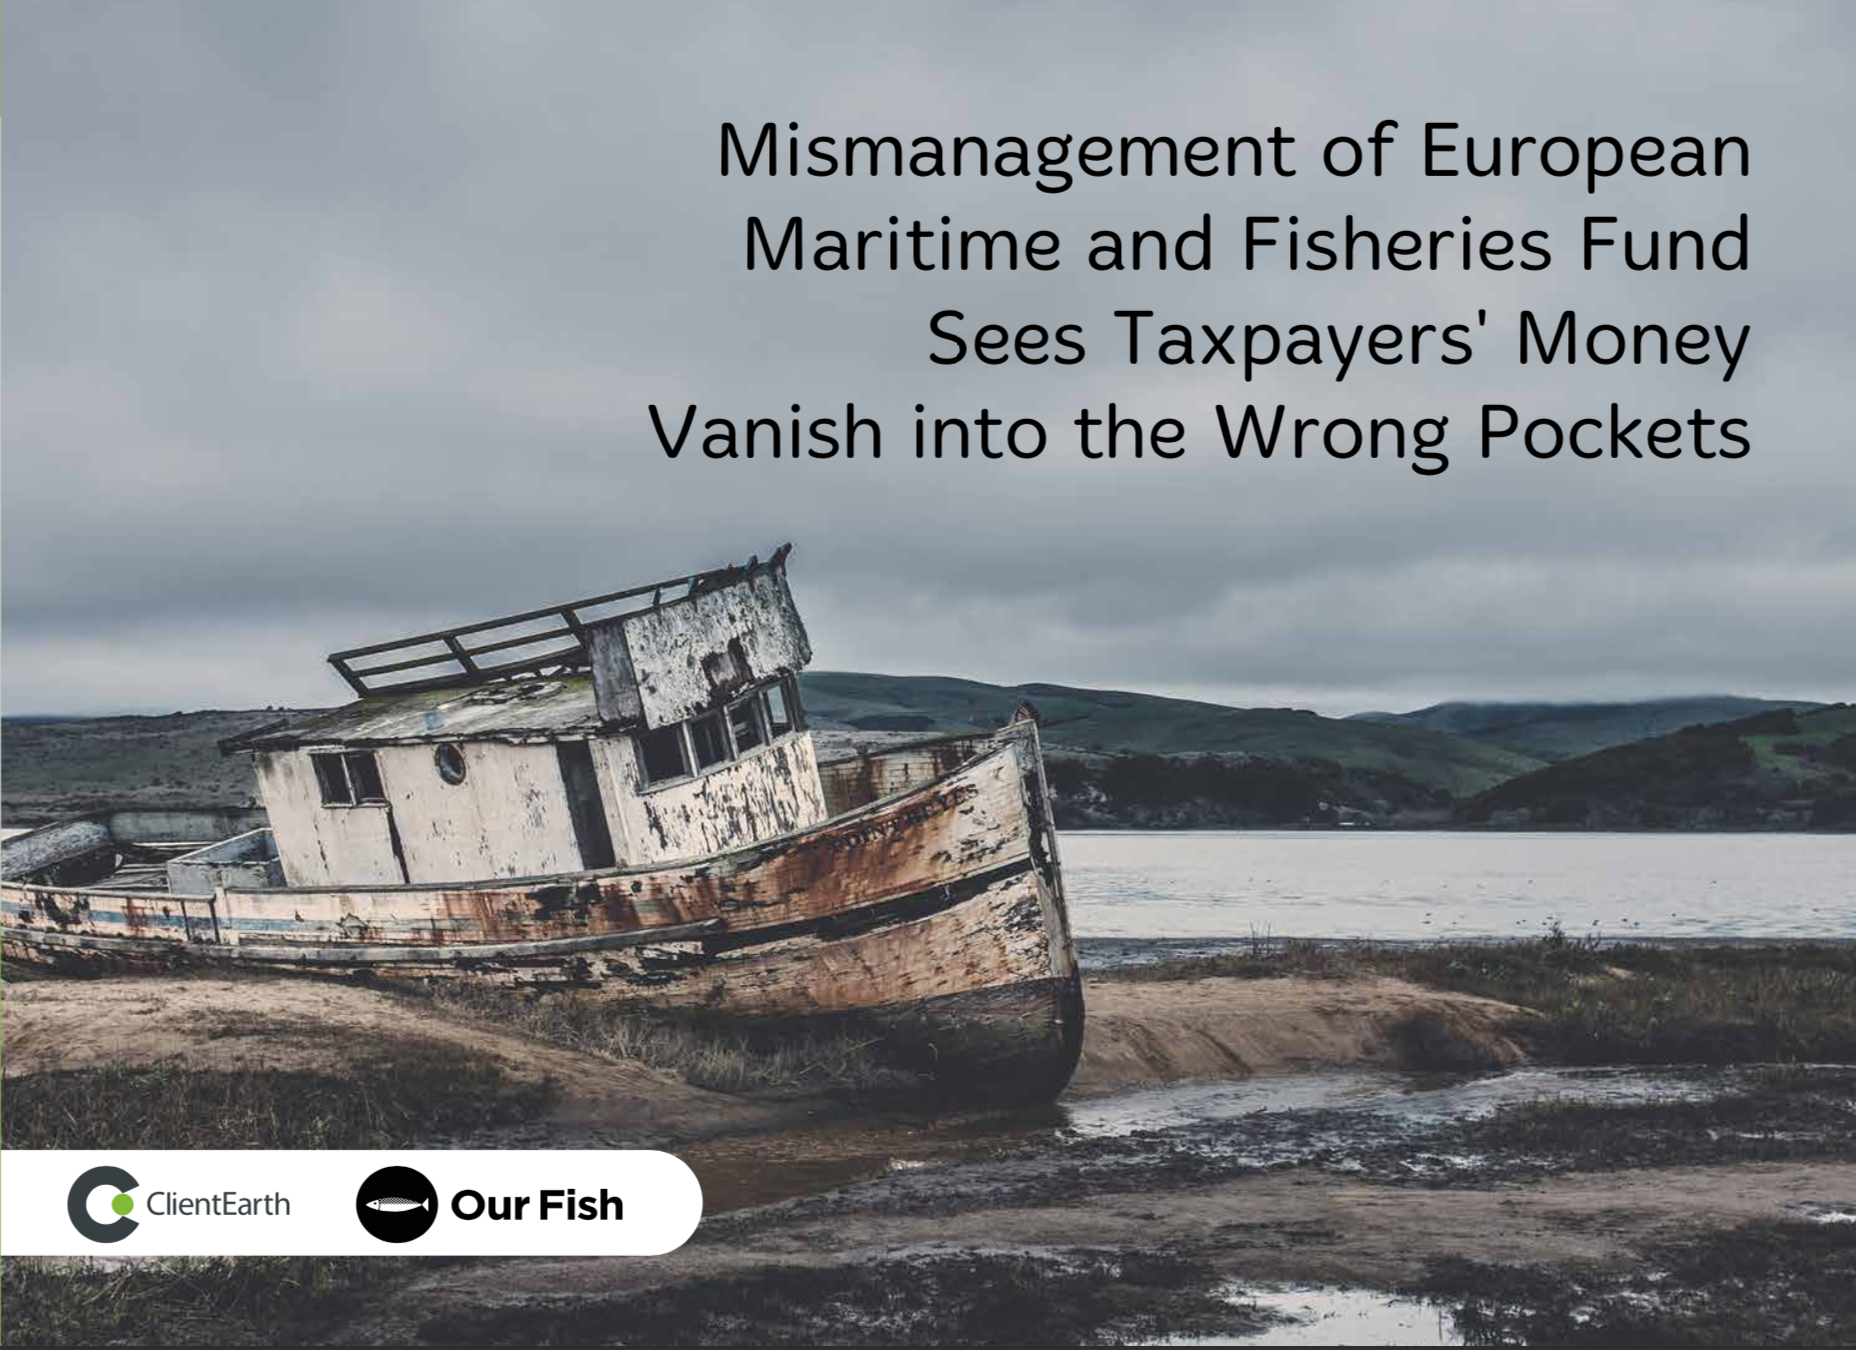 Mismanagement of European Maritime and Fisheries Fund Sees Taxpayers' Money Vanish into the Wrong Pockets